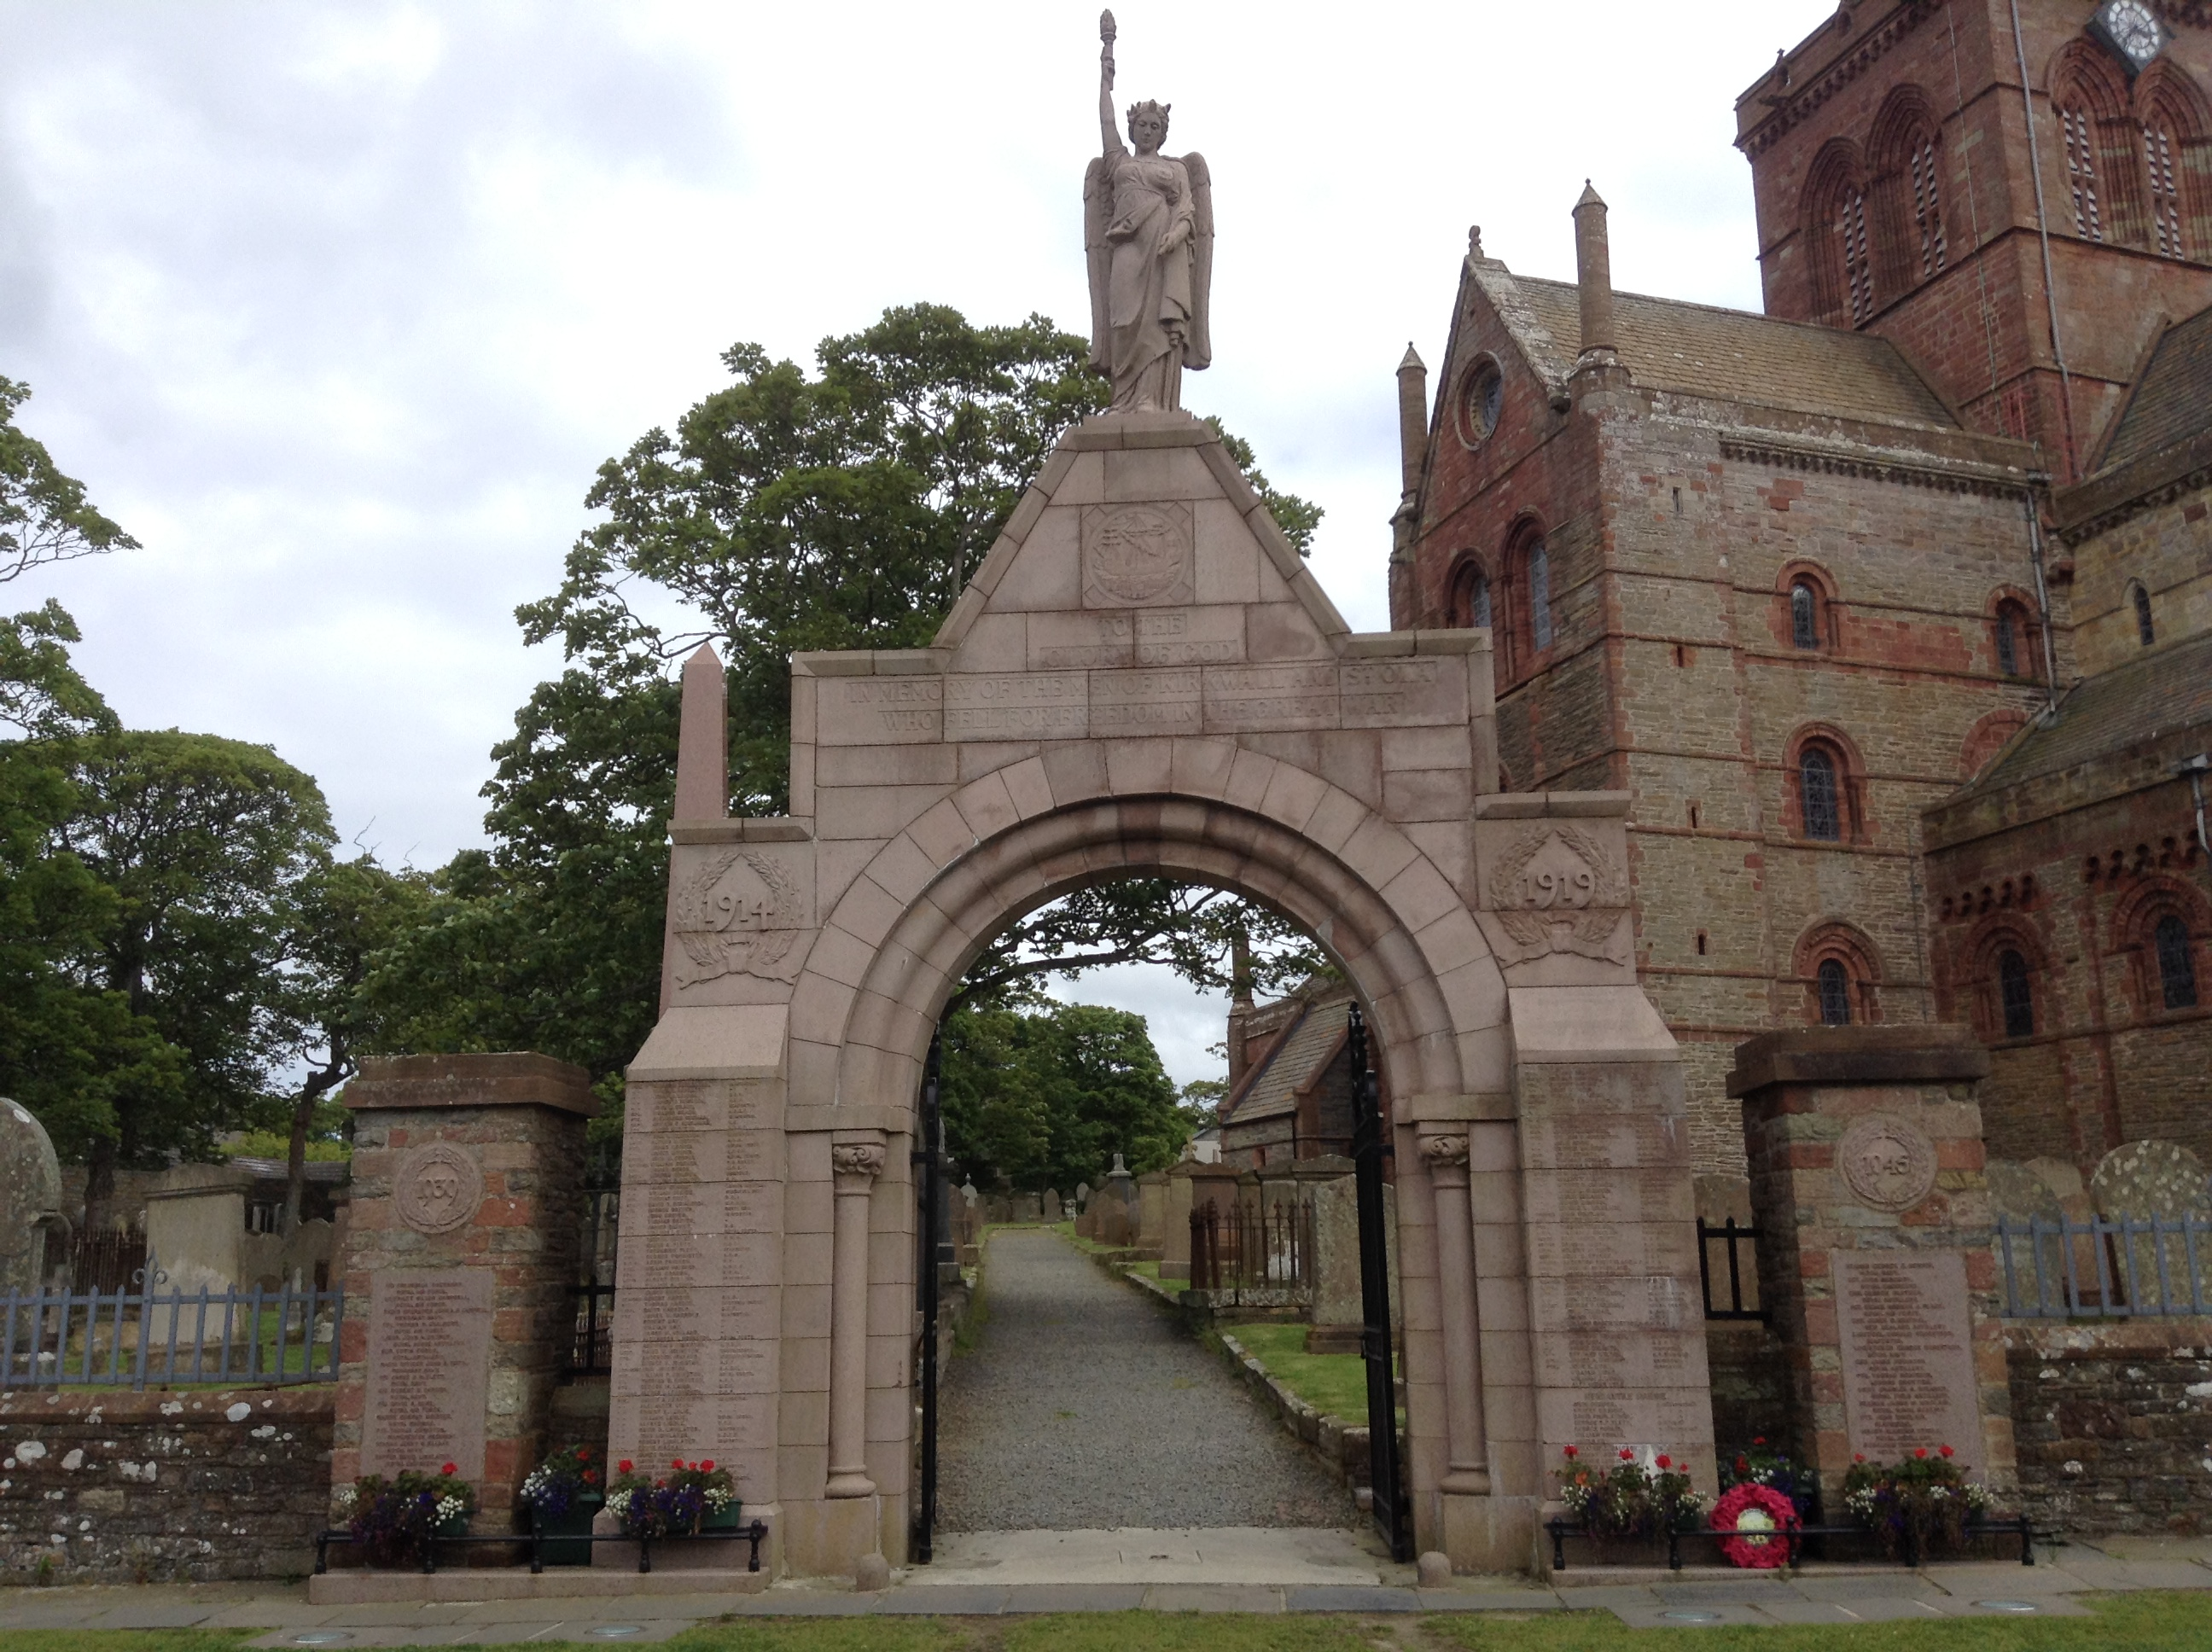 War Memorial– The War Memorial at St. Magnus Cathedral in Kirkwall, Orkney Islands, Scotland. Image taken 7 July 2017 by Tom Tulloch.